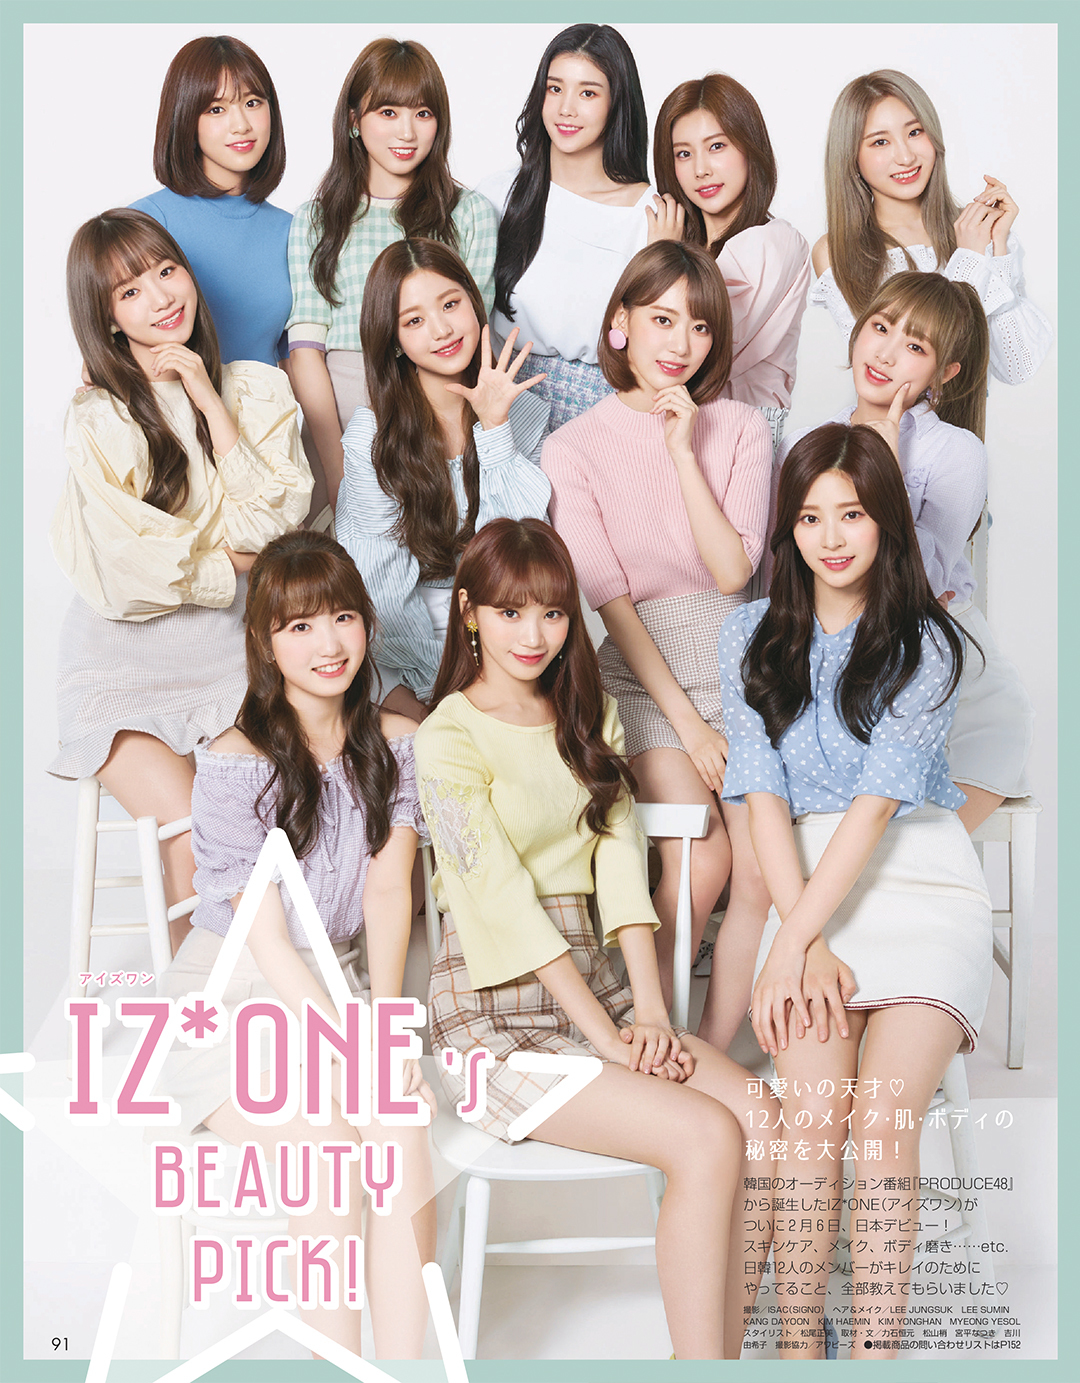 IZ*ONE's BEAUTY PICK!